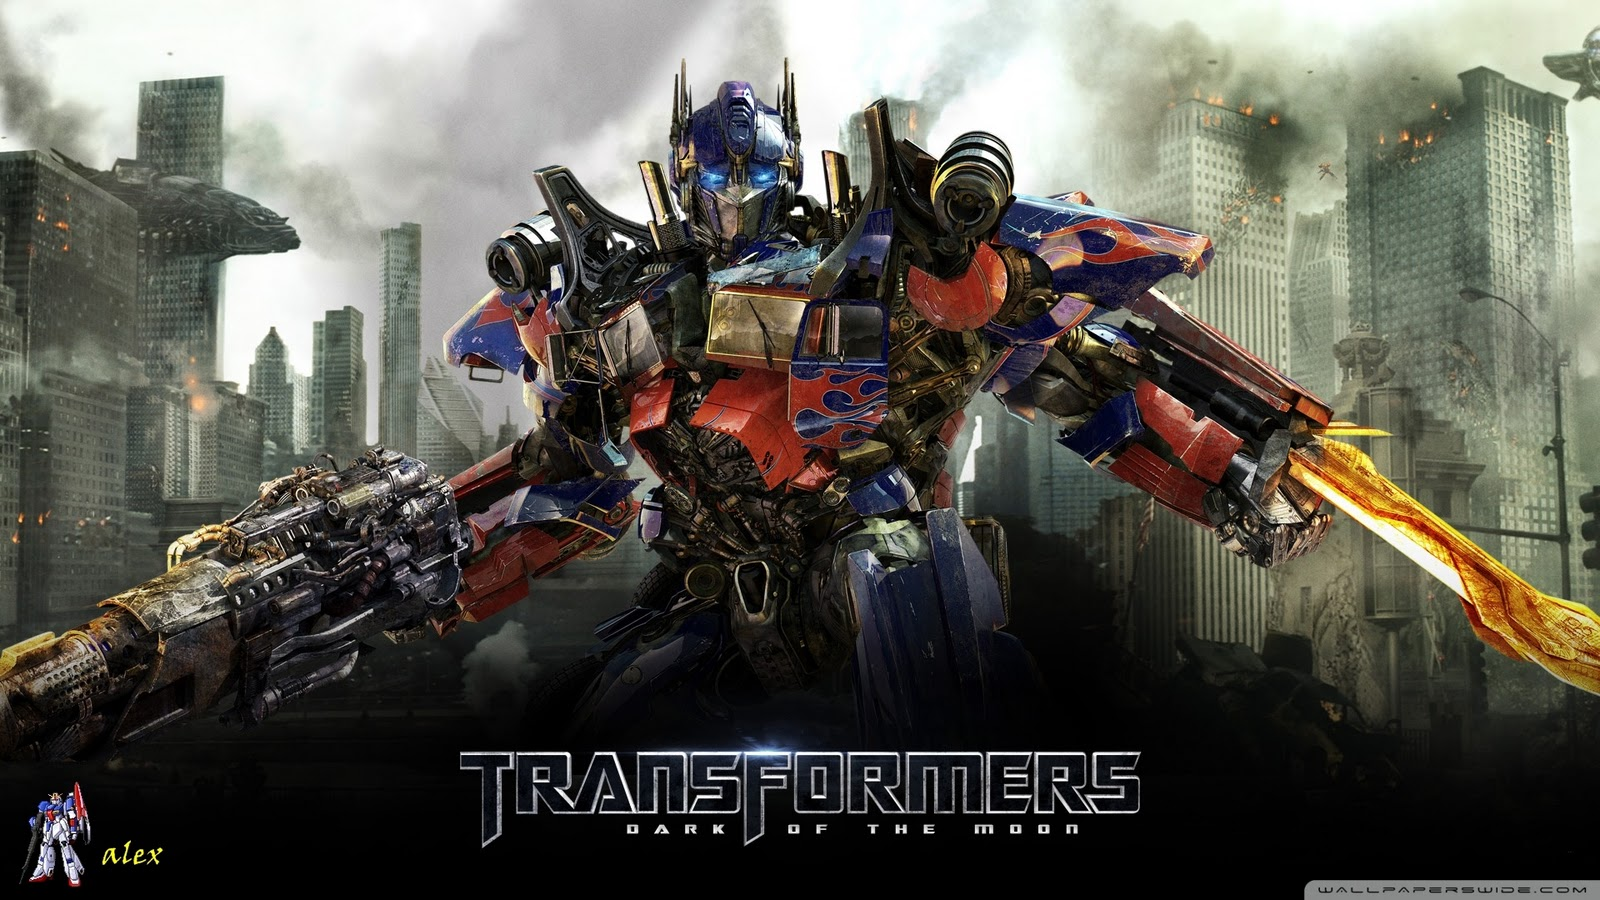 optimus prime in transformers wallpapers - Transformers 4 Optimus Prime HD desktop wallpaper